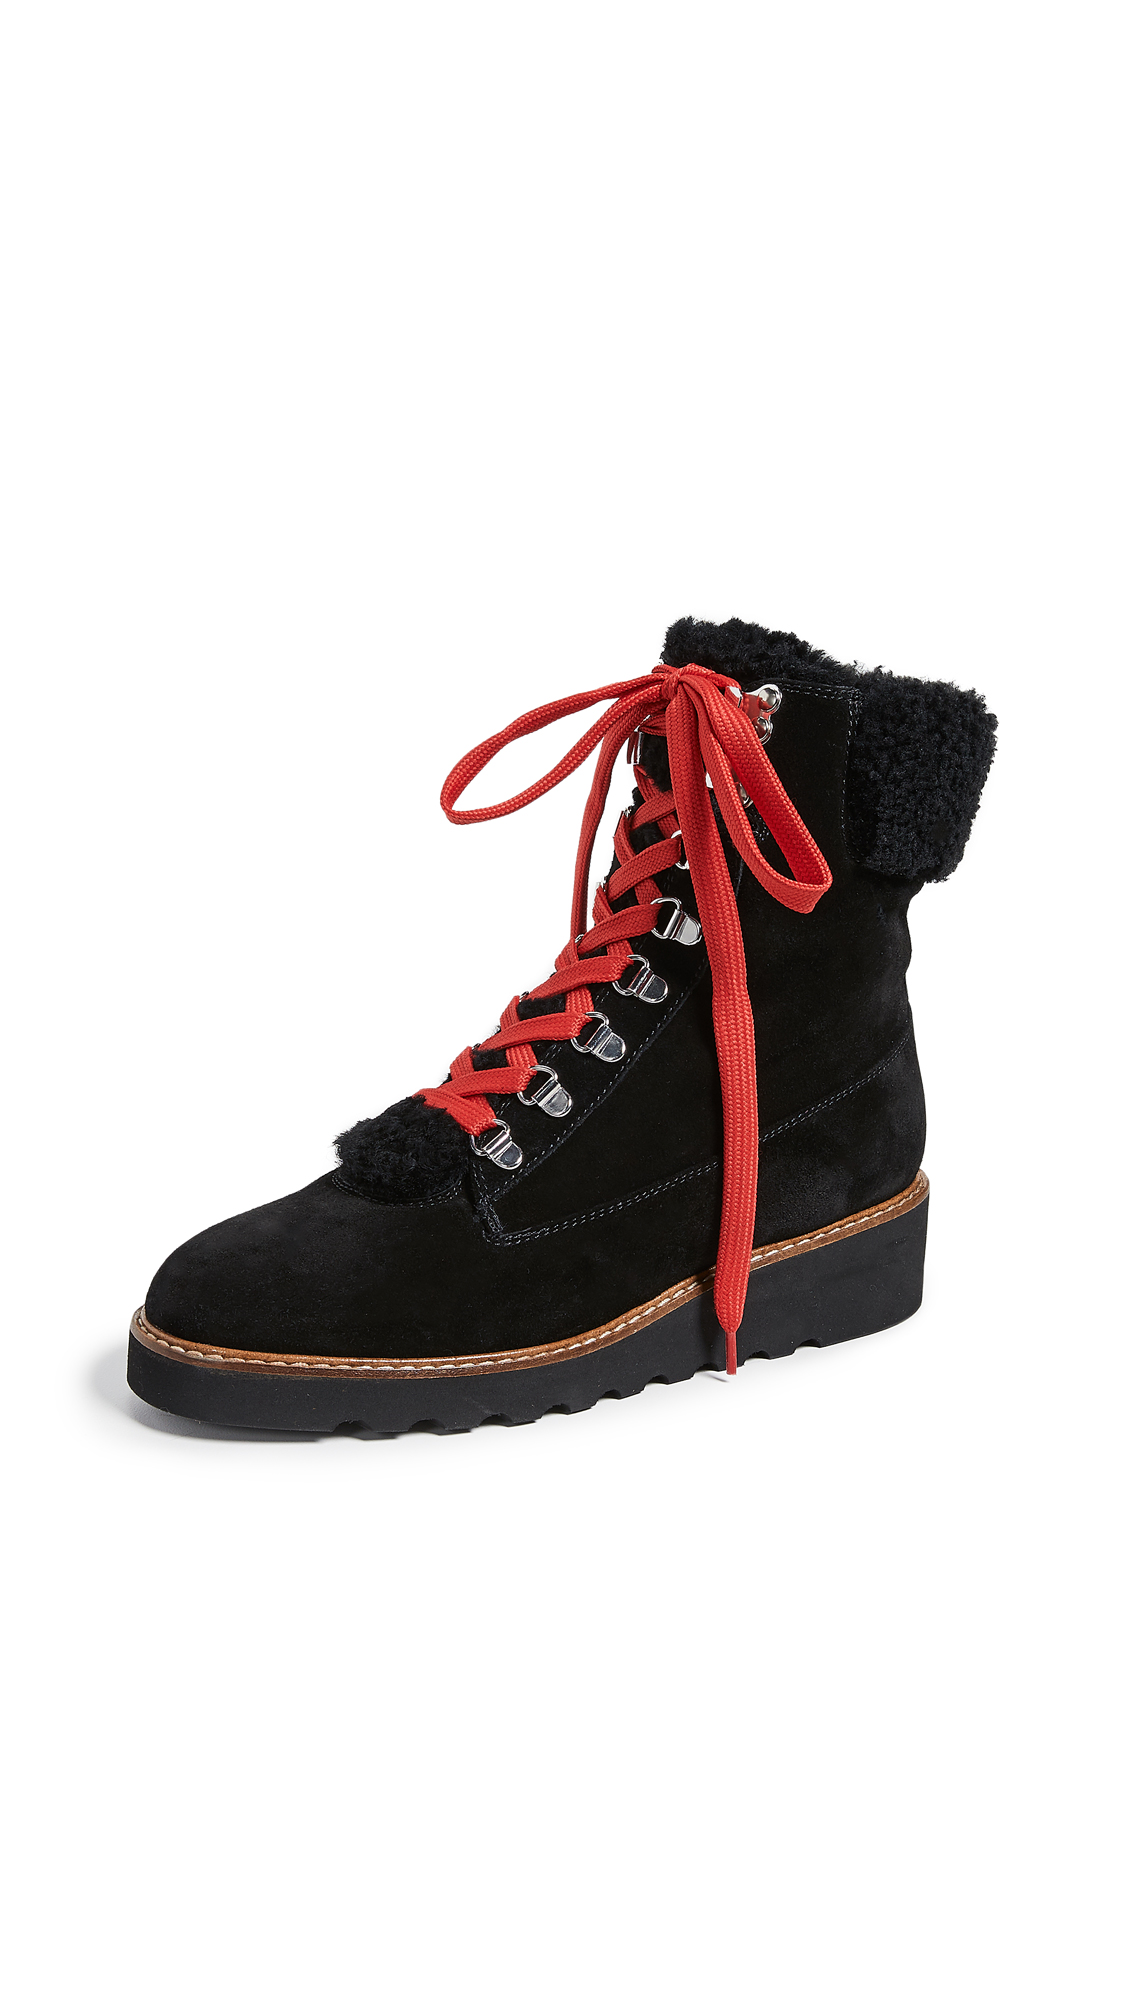 Veronica Beard Vale Hiker Shearling Boots - Black/Black